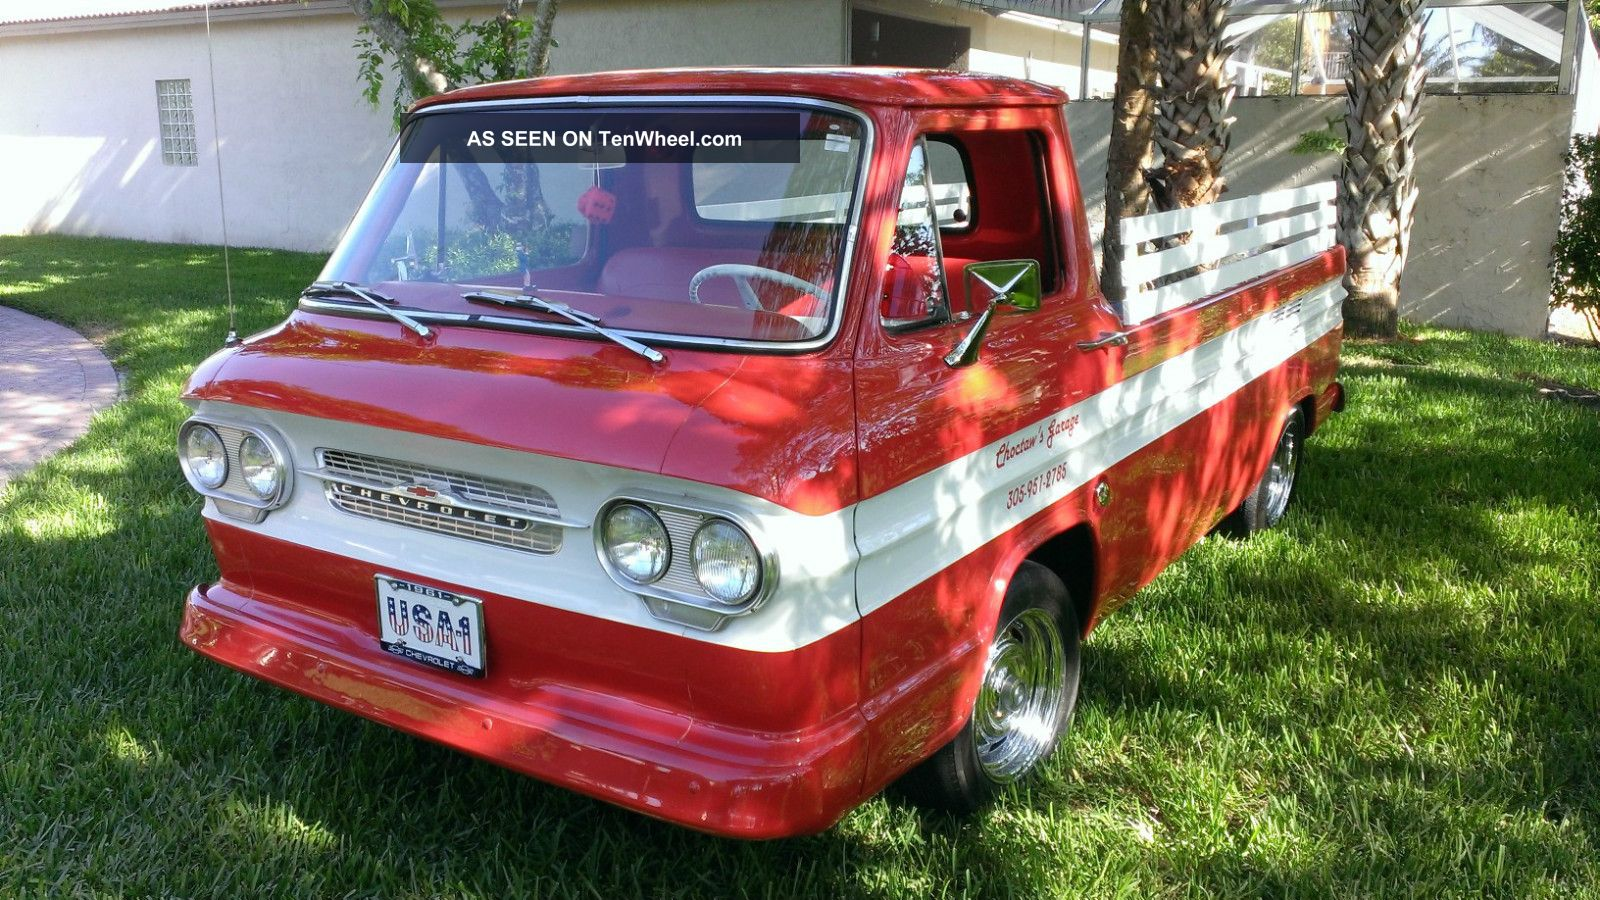 1961 Corvair Loadside - Pickup - Restoration Done - Drive Or Show Her You Choose Corvair photo